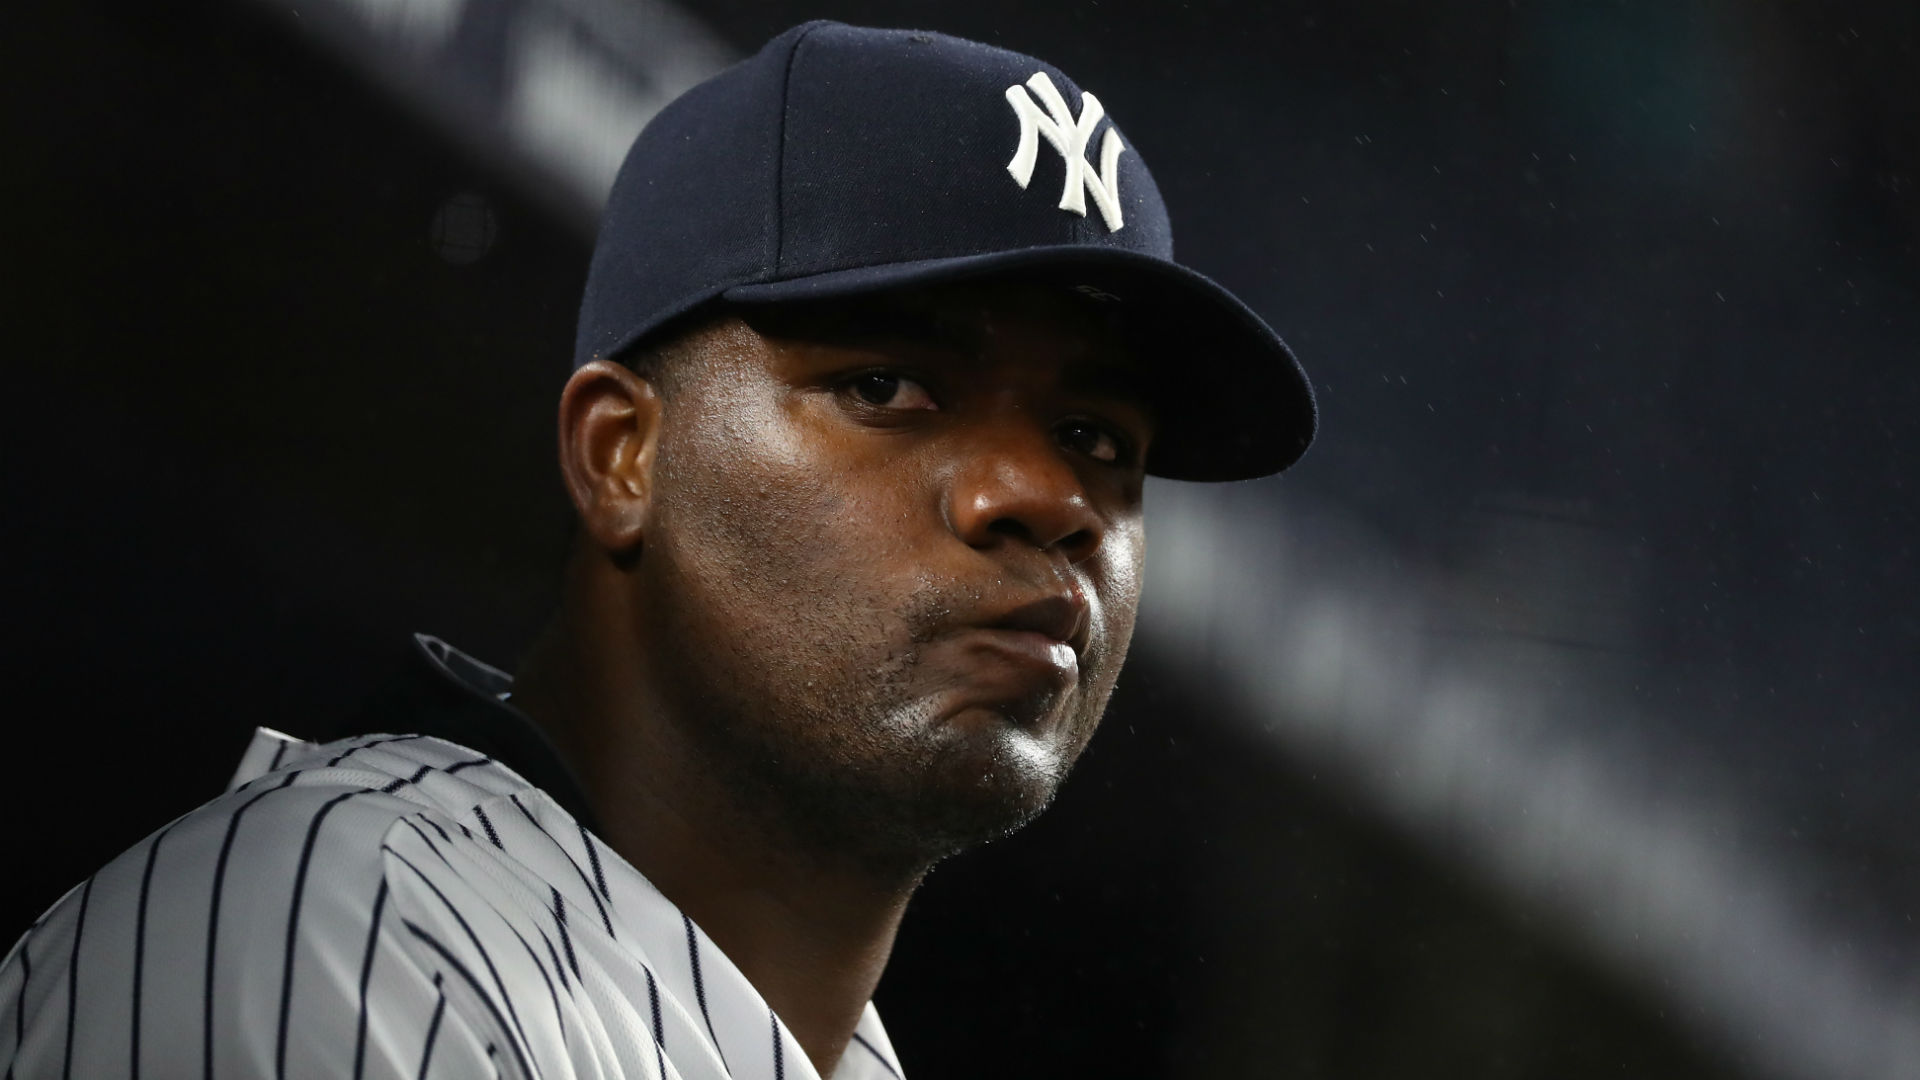 Yankees pitcher Michael Pineda likely needs Tommy John surgery